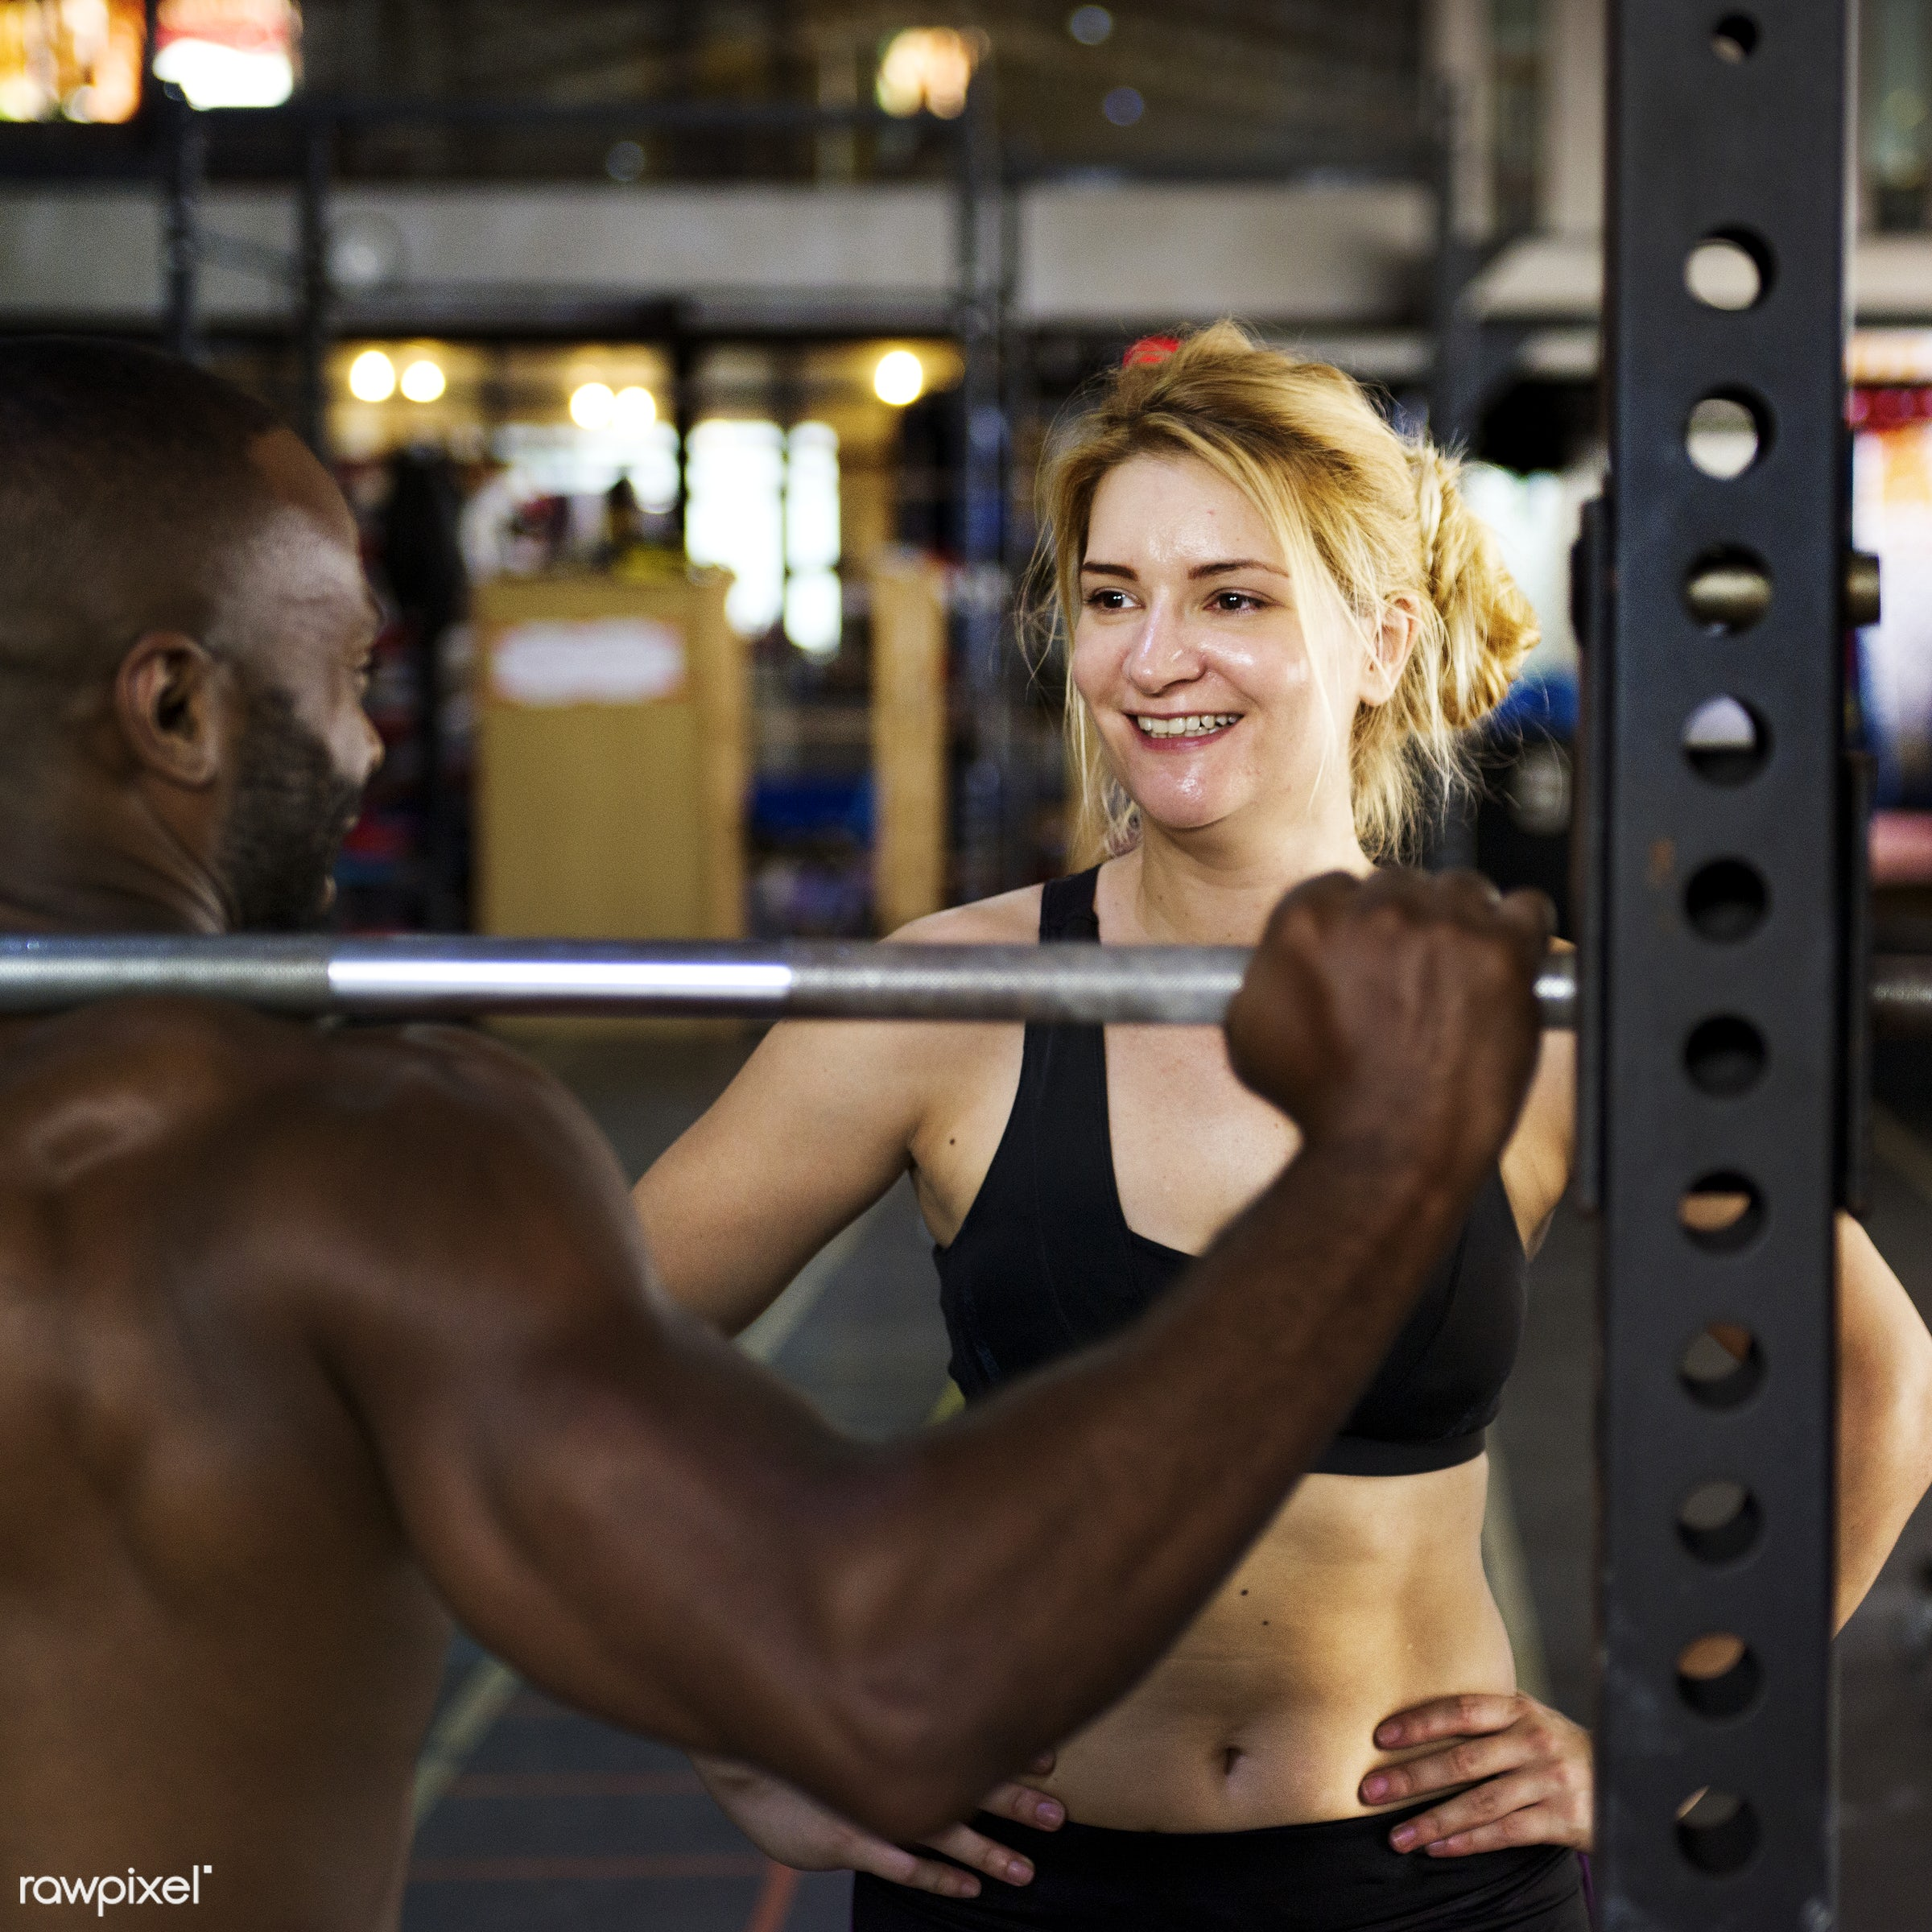 Personal trainer at the gym - active, activity, athlete, athletic, barbell, body, buff, caucasian, diverse, diversity,...